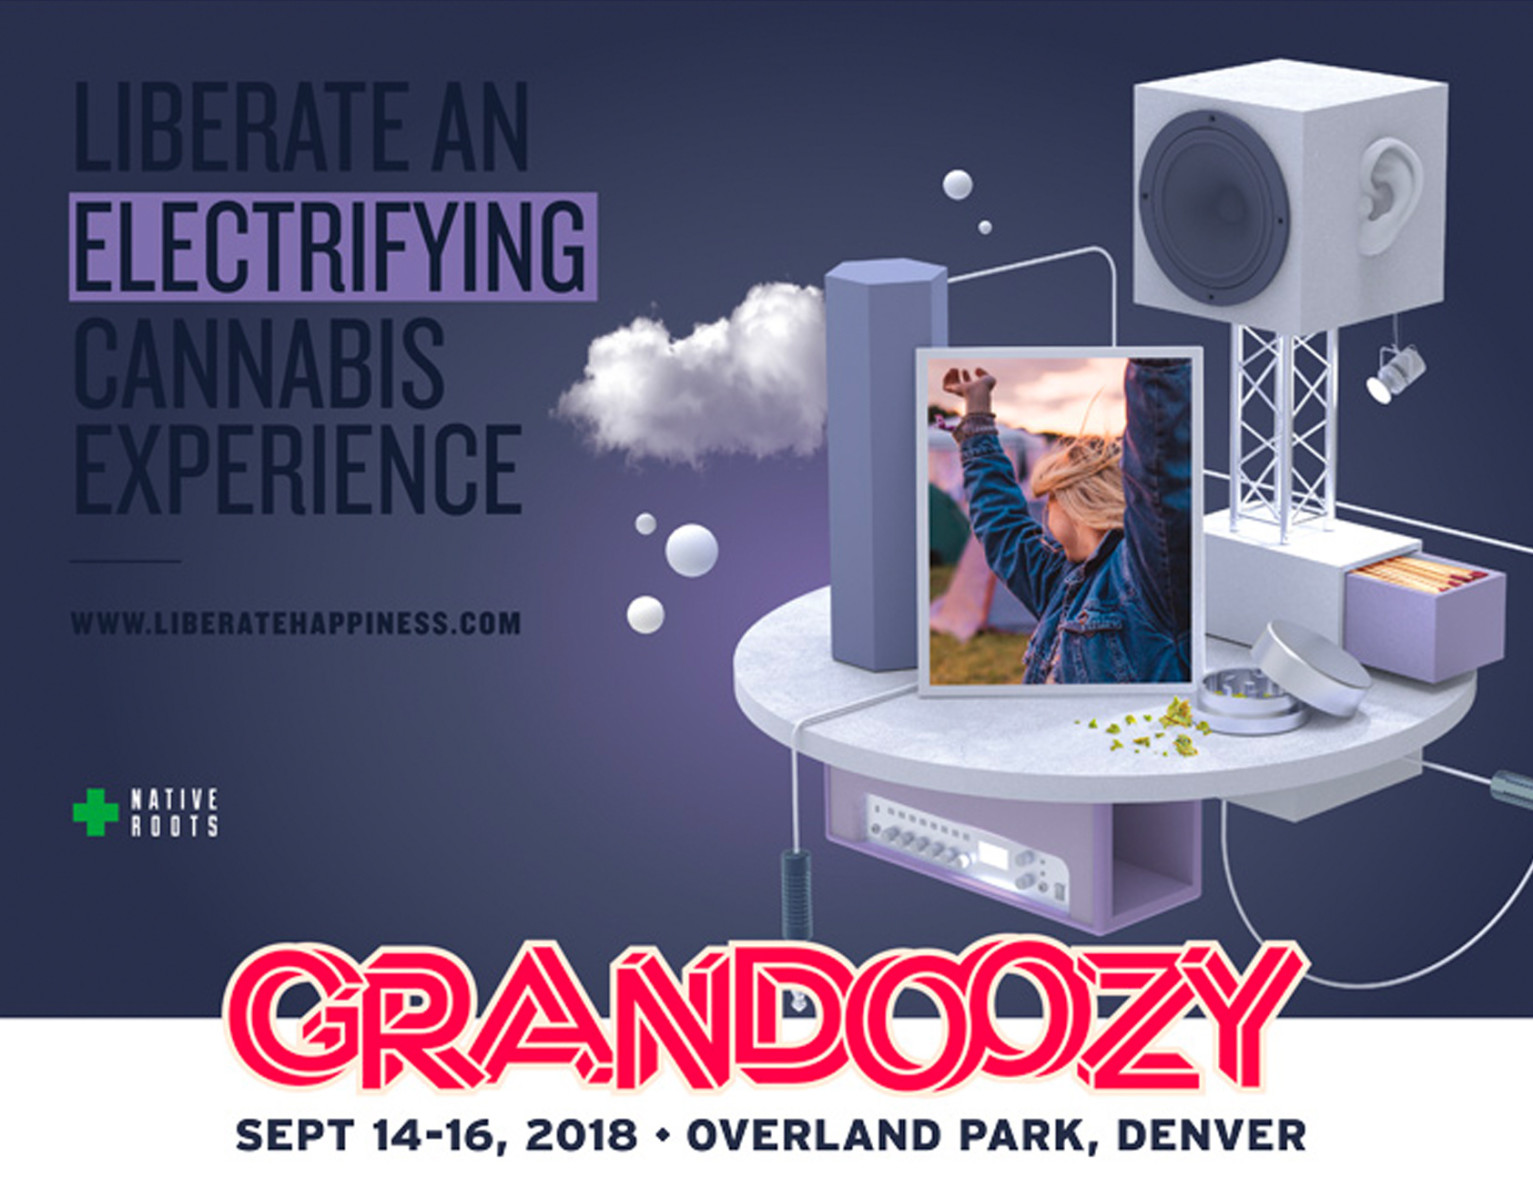 Native Roots Dispensary Grandoozy Concert Denver Colorado Win Tickets